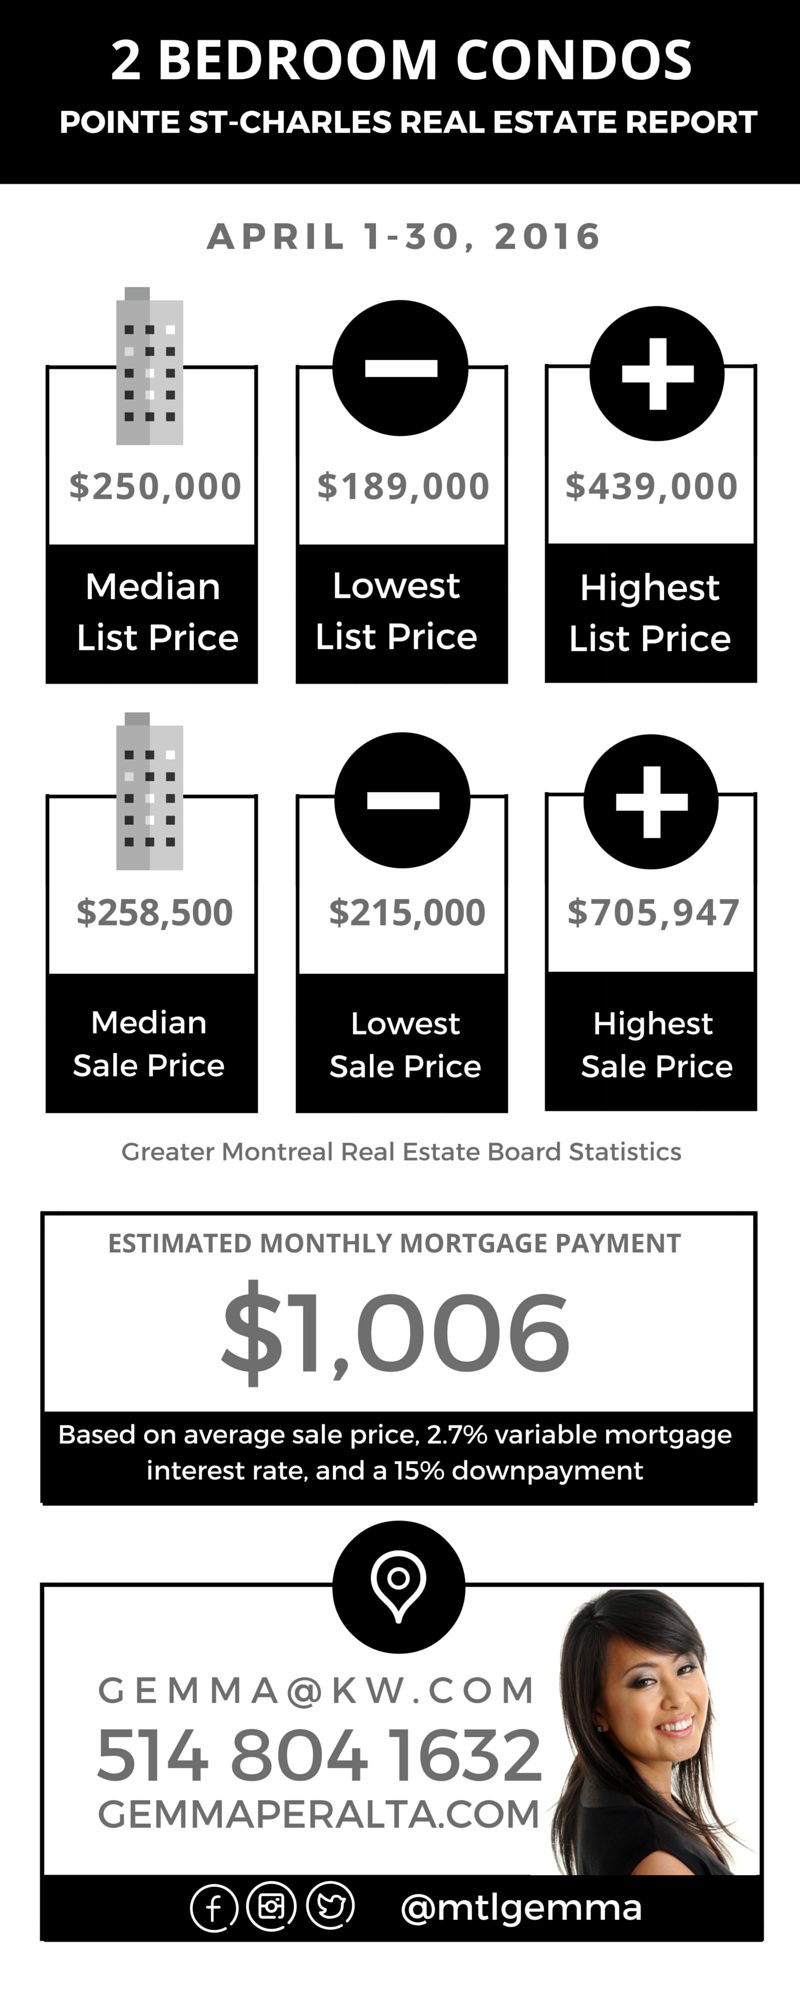 Pointe St-Charles Real Estate Report April 2016 03